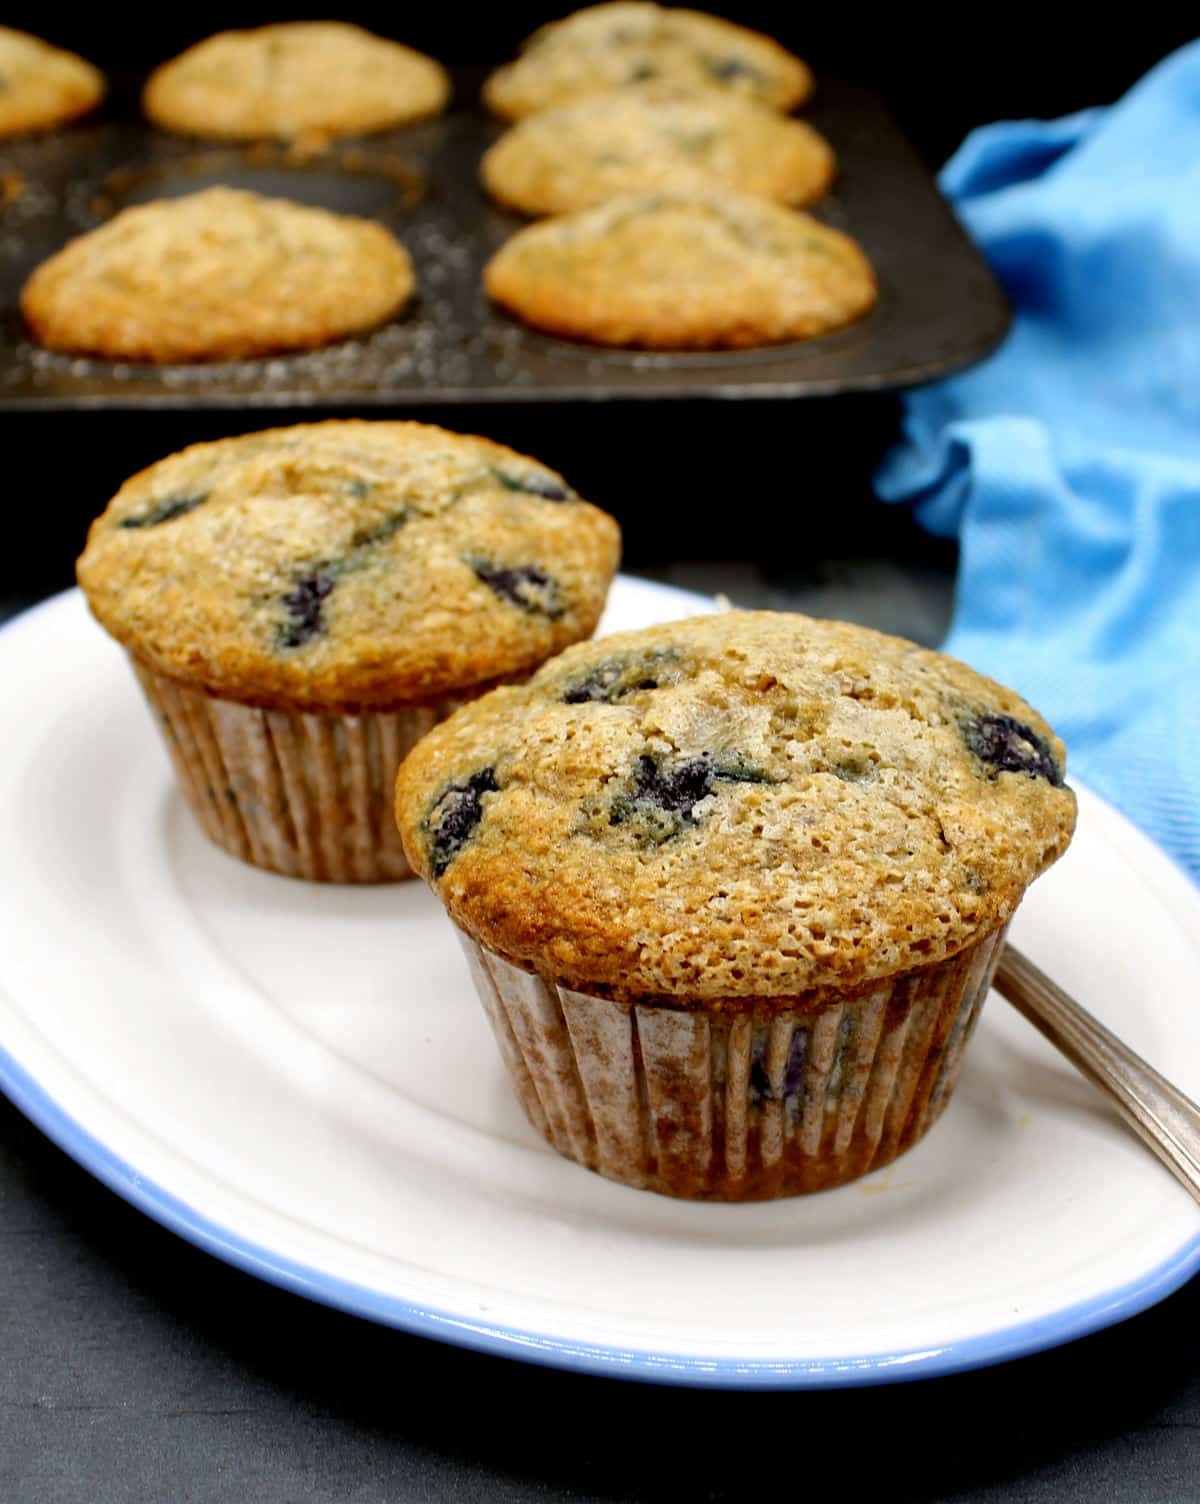 Two vegan blueberry muffins on a white and blue plate with the muffin tin with more muffins in background with a blue napkin.